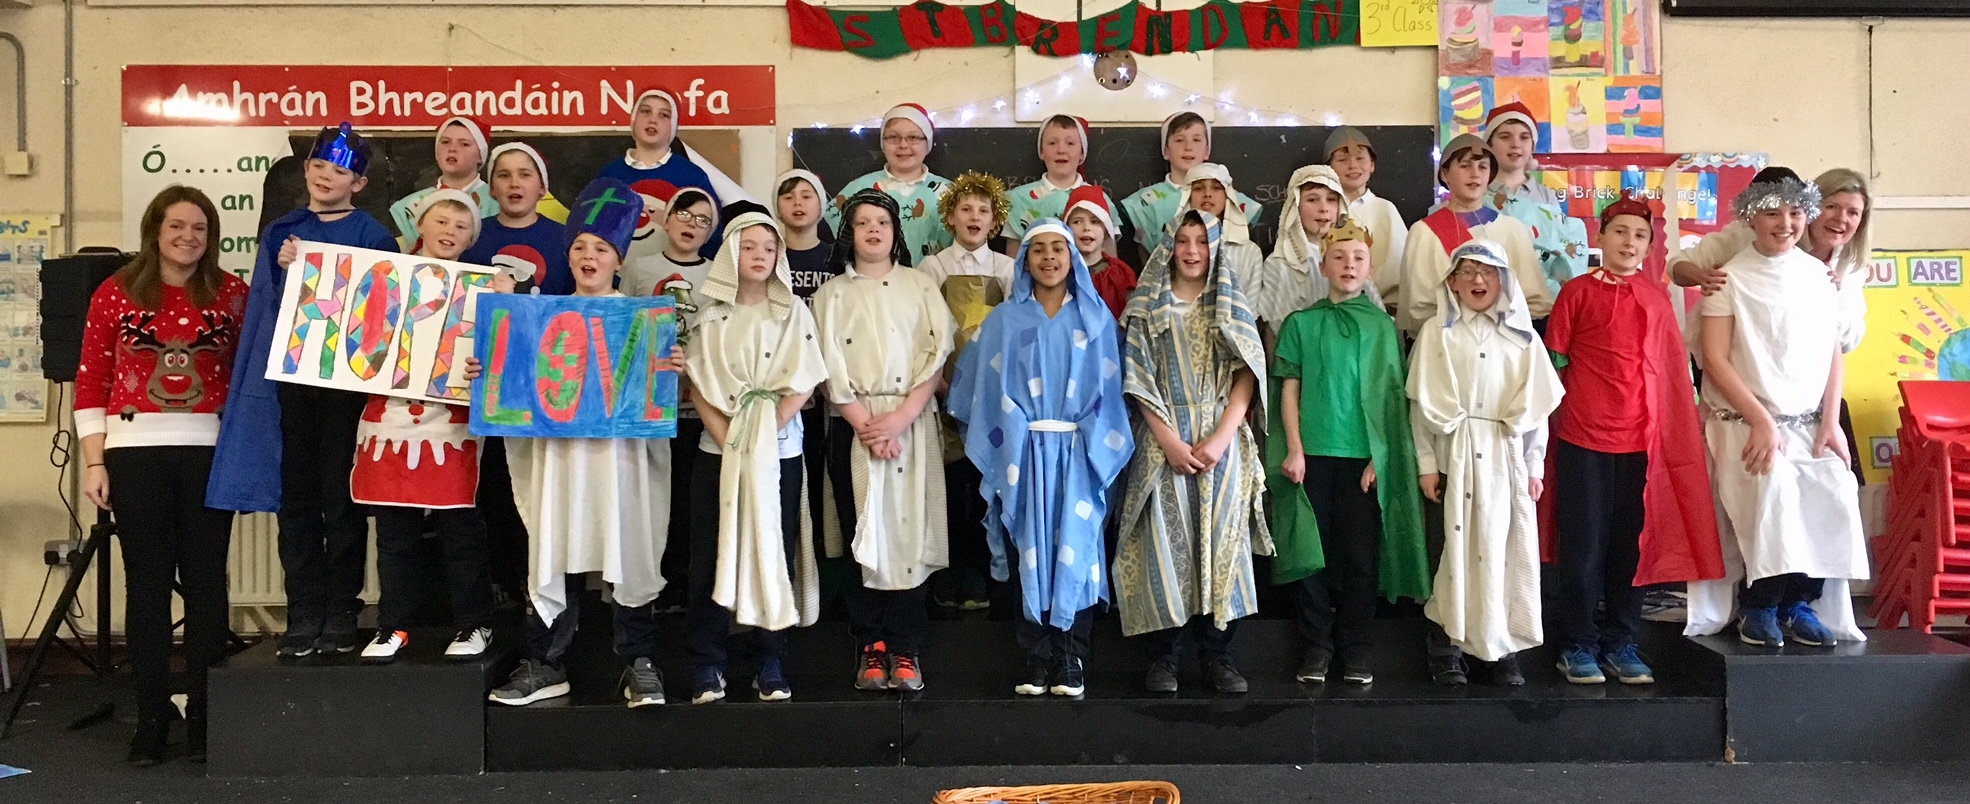 5th class nativity